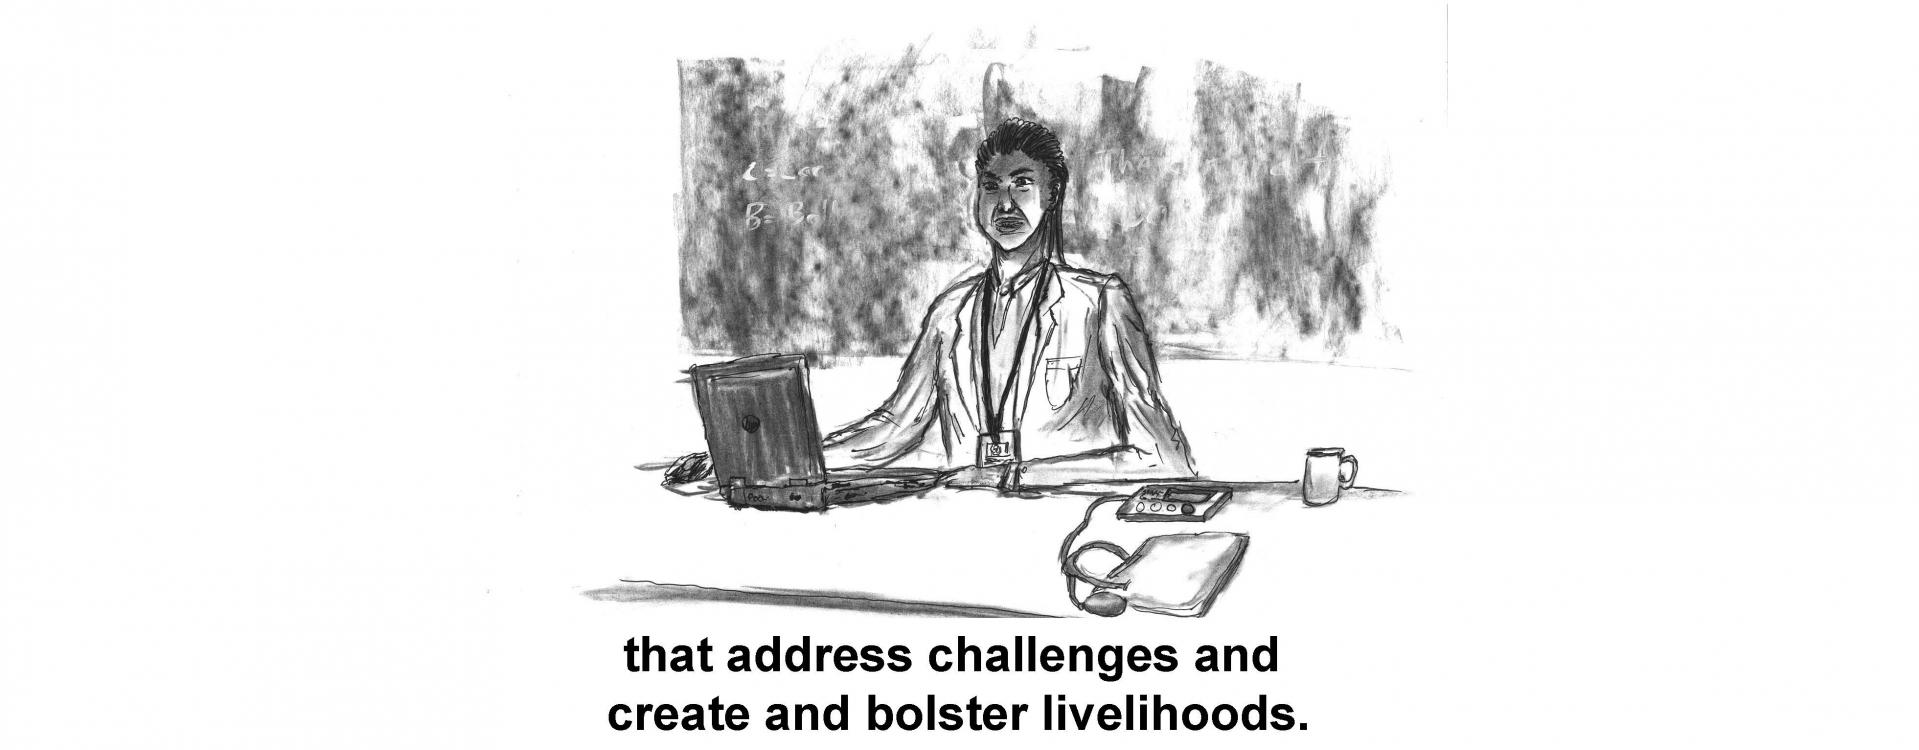 that address challenges and create and bolster livelihoods.